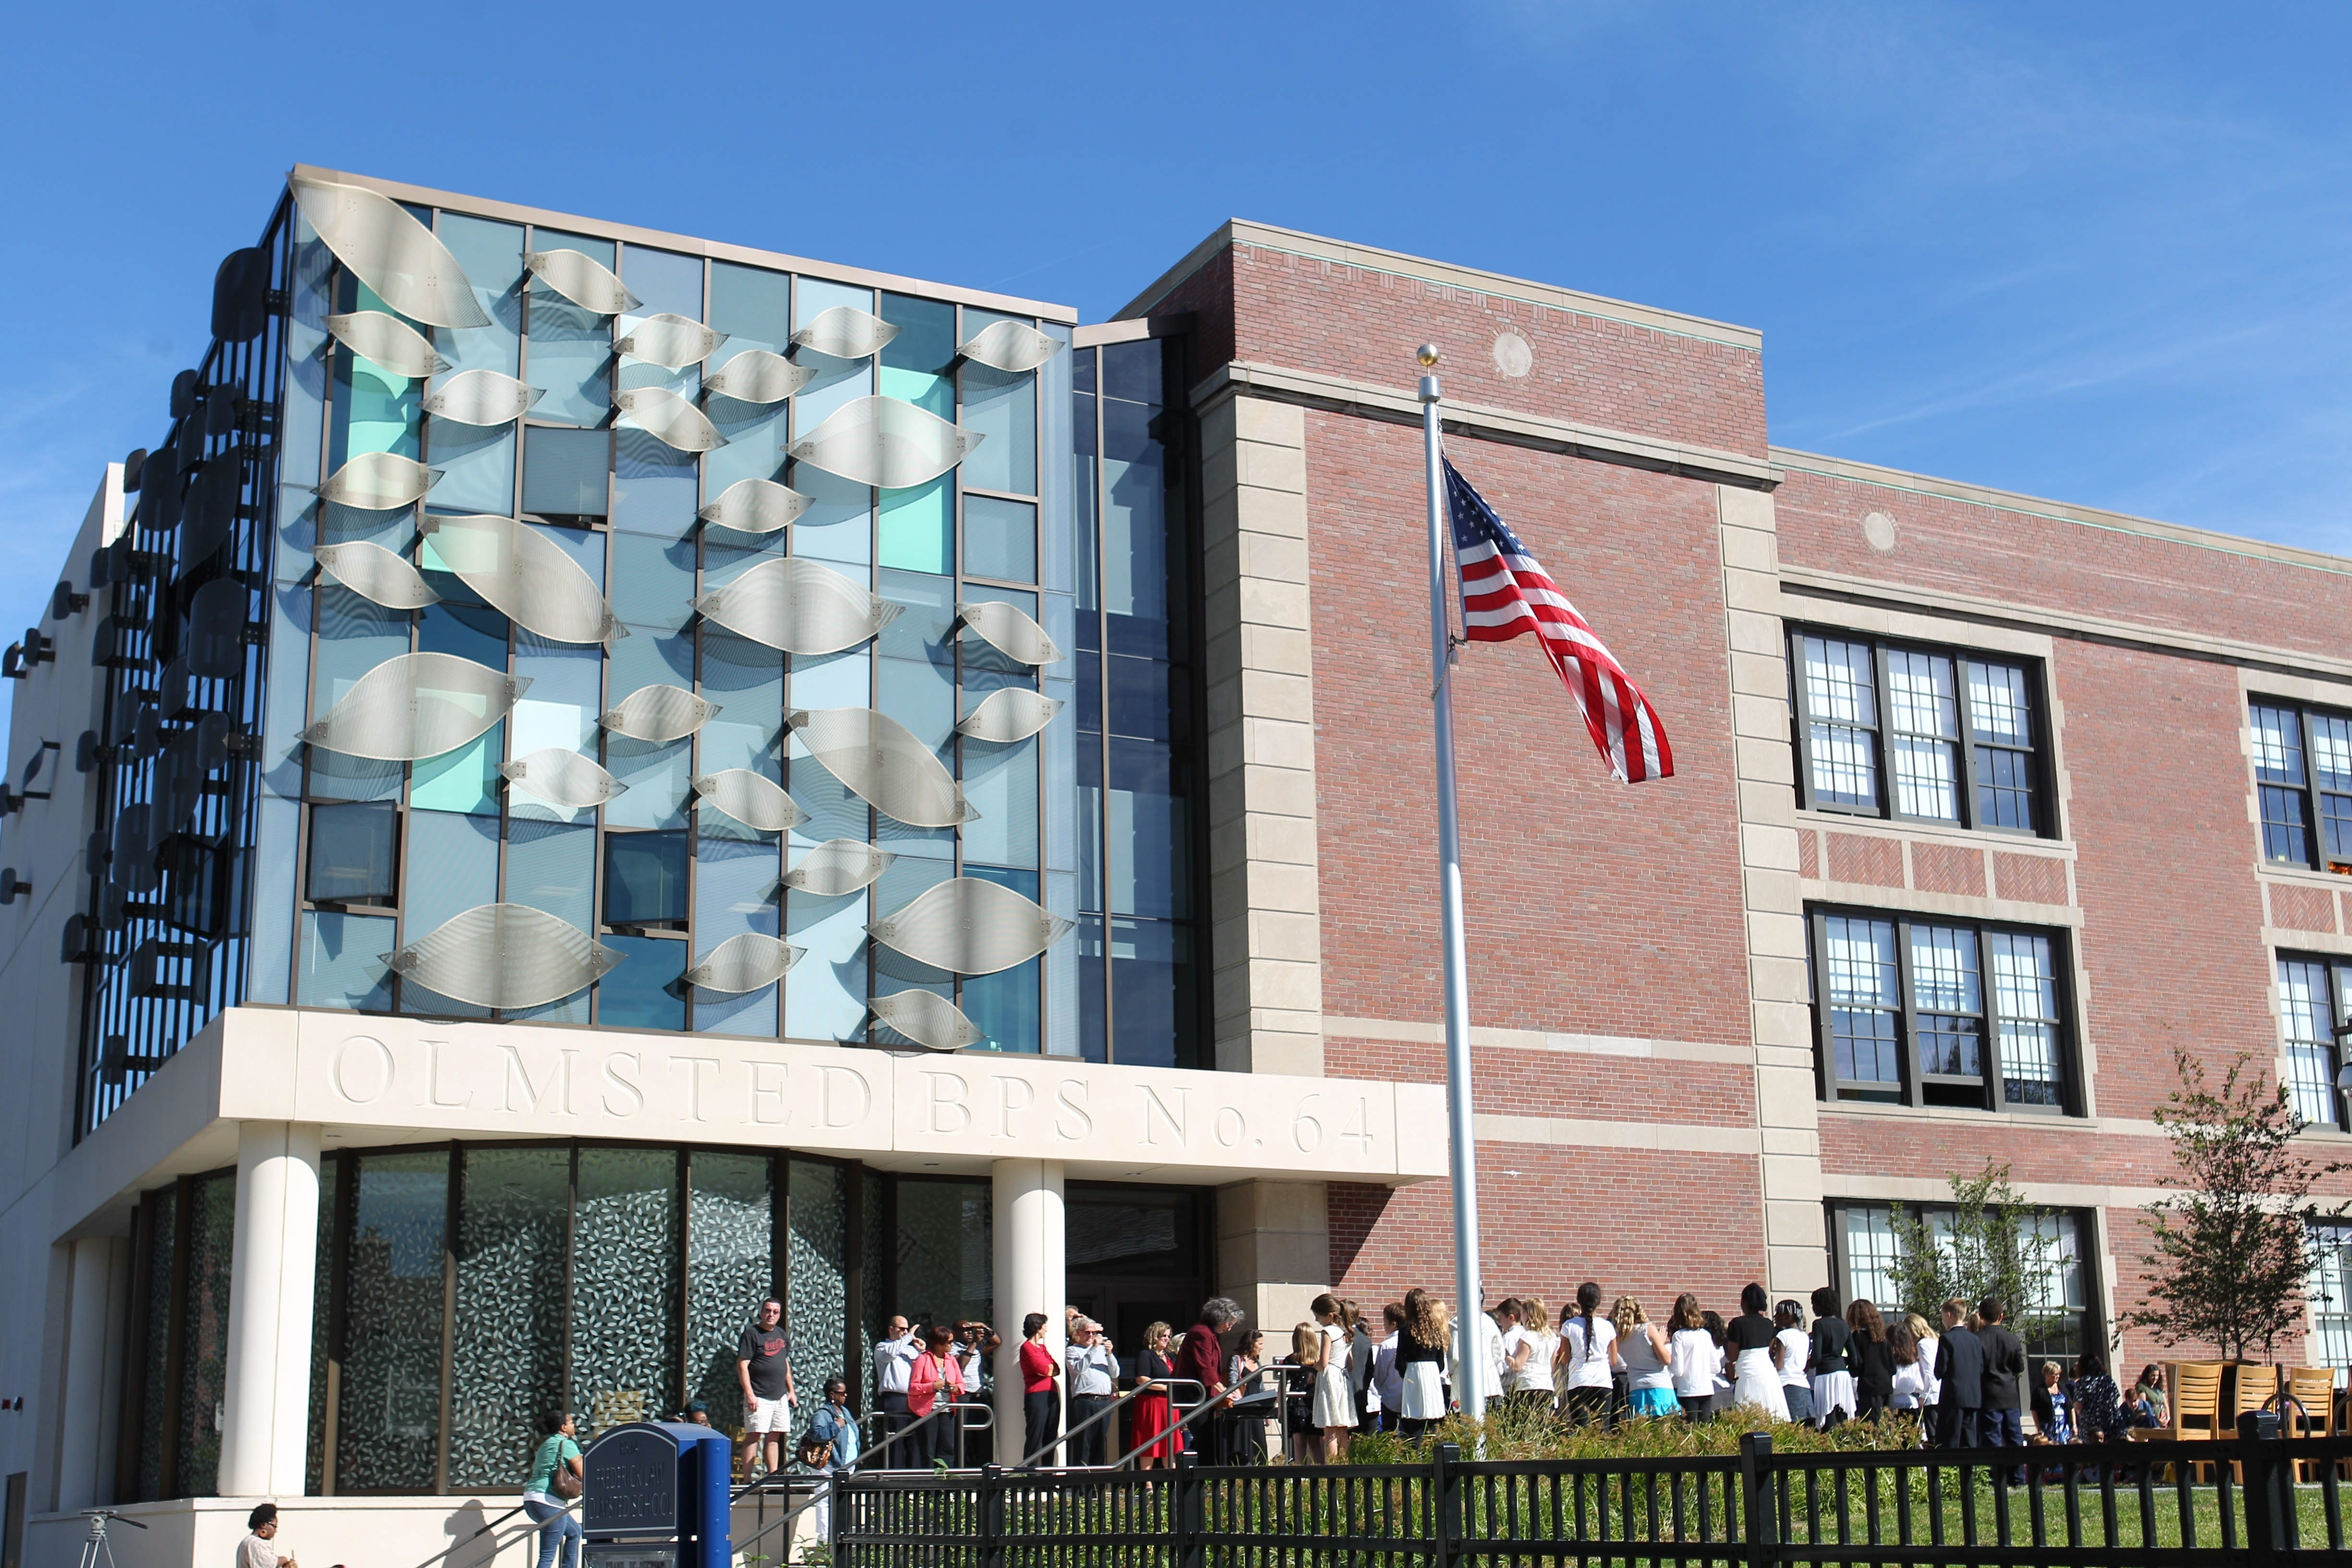 While the district's deadline for next year's enrollment applications is Dec. 6, anyone who waits that long will be shut out of four of the district's high-performing schools, including Olmsted 64 pictured here. Olmsted 64, City Honors, Olmsted 156, Hutch-Tech and Buffalo Academy for Visual and Performing Arts all have admissions tests.